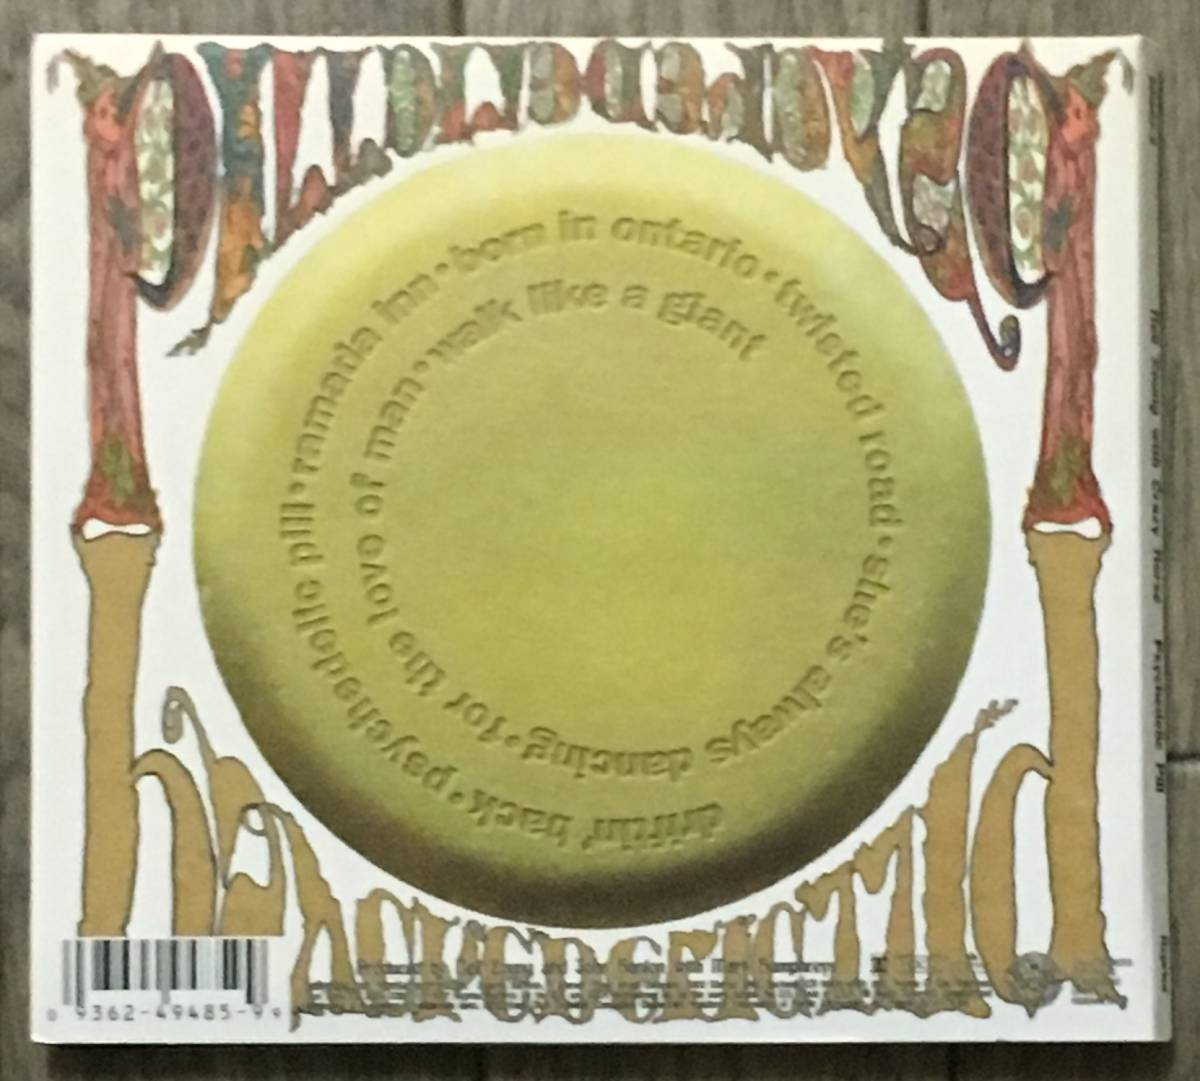 Neil Young with Crazy Horse☆Psychedelic Pill☆2CD☆輸入盤☆美品☆ニール・ヤング クレイジー・ホース☆『サイケデリック・ピル』_画像3